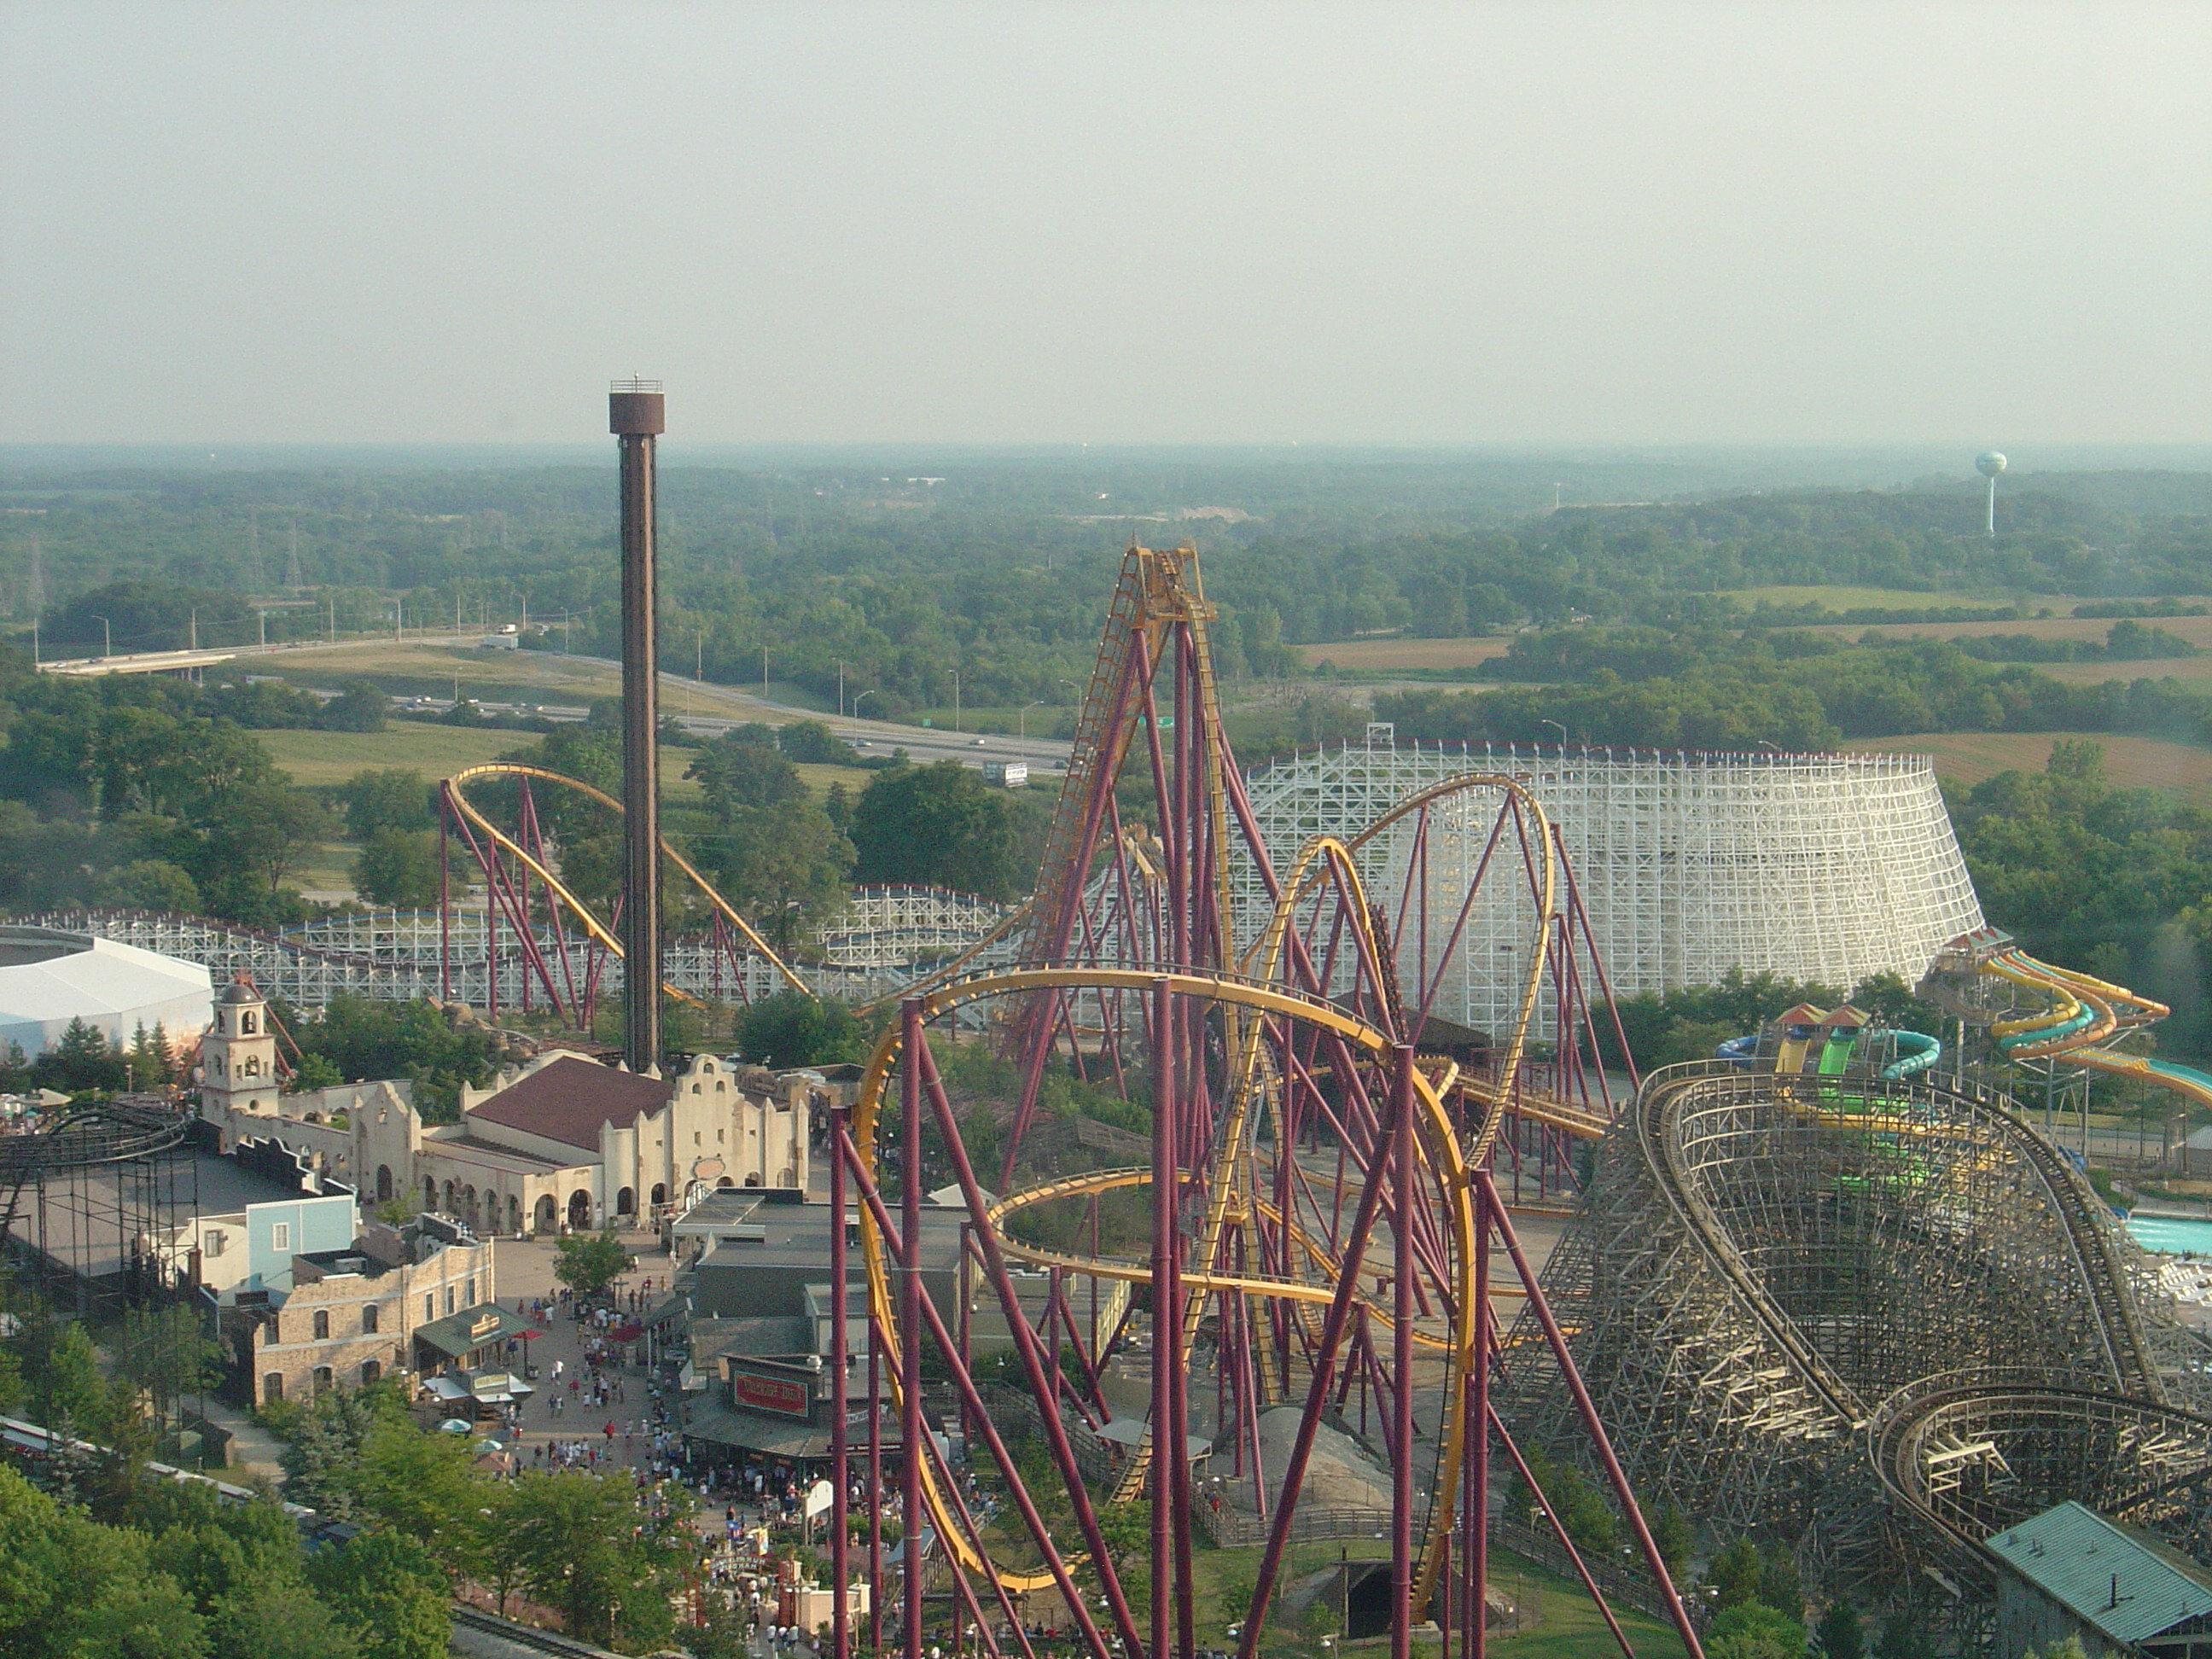 six flags Six flags entertainment corporation is the world's largest regional theme park company with $14 billion in revenue and 25 parks across north america.